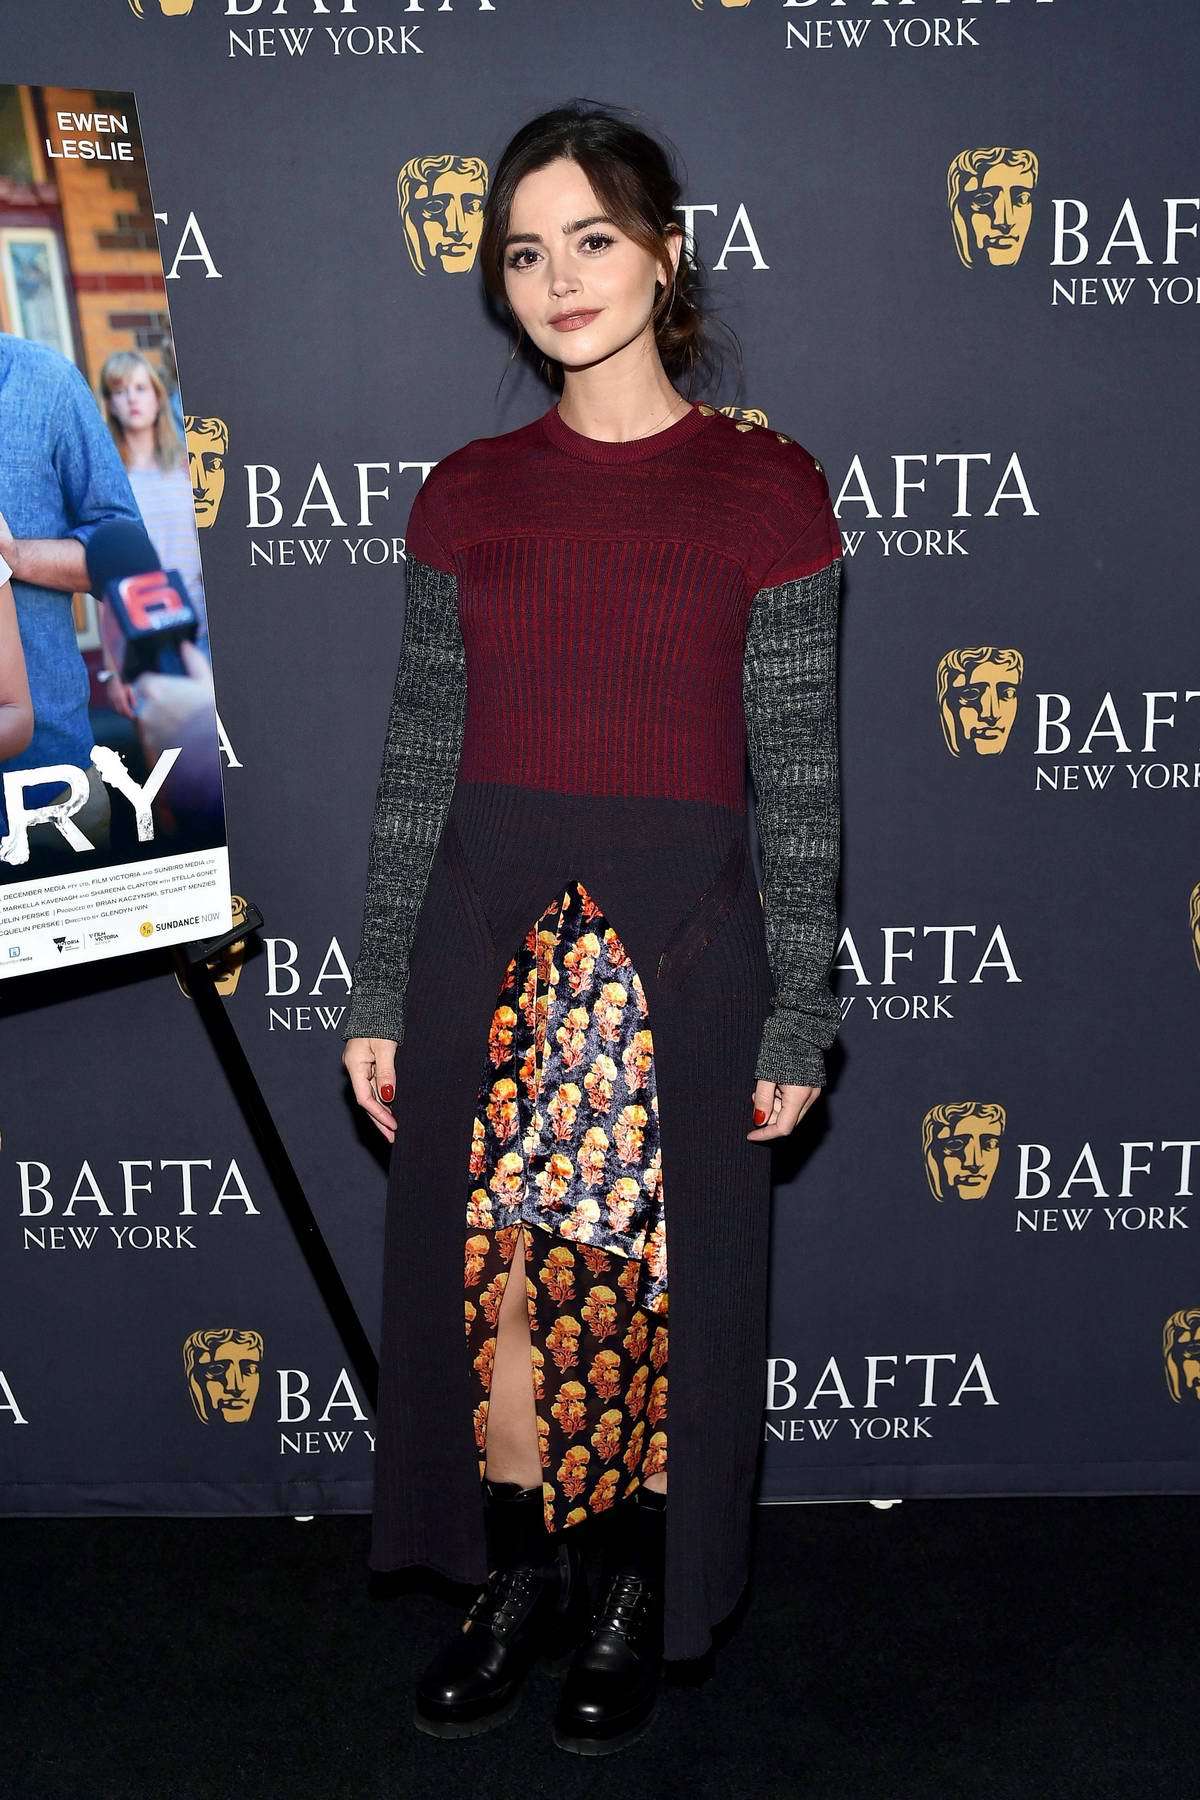 Jenna Coleman attends 'The Cry' BAFTA Film Screening in New York City